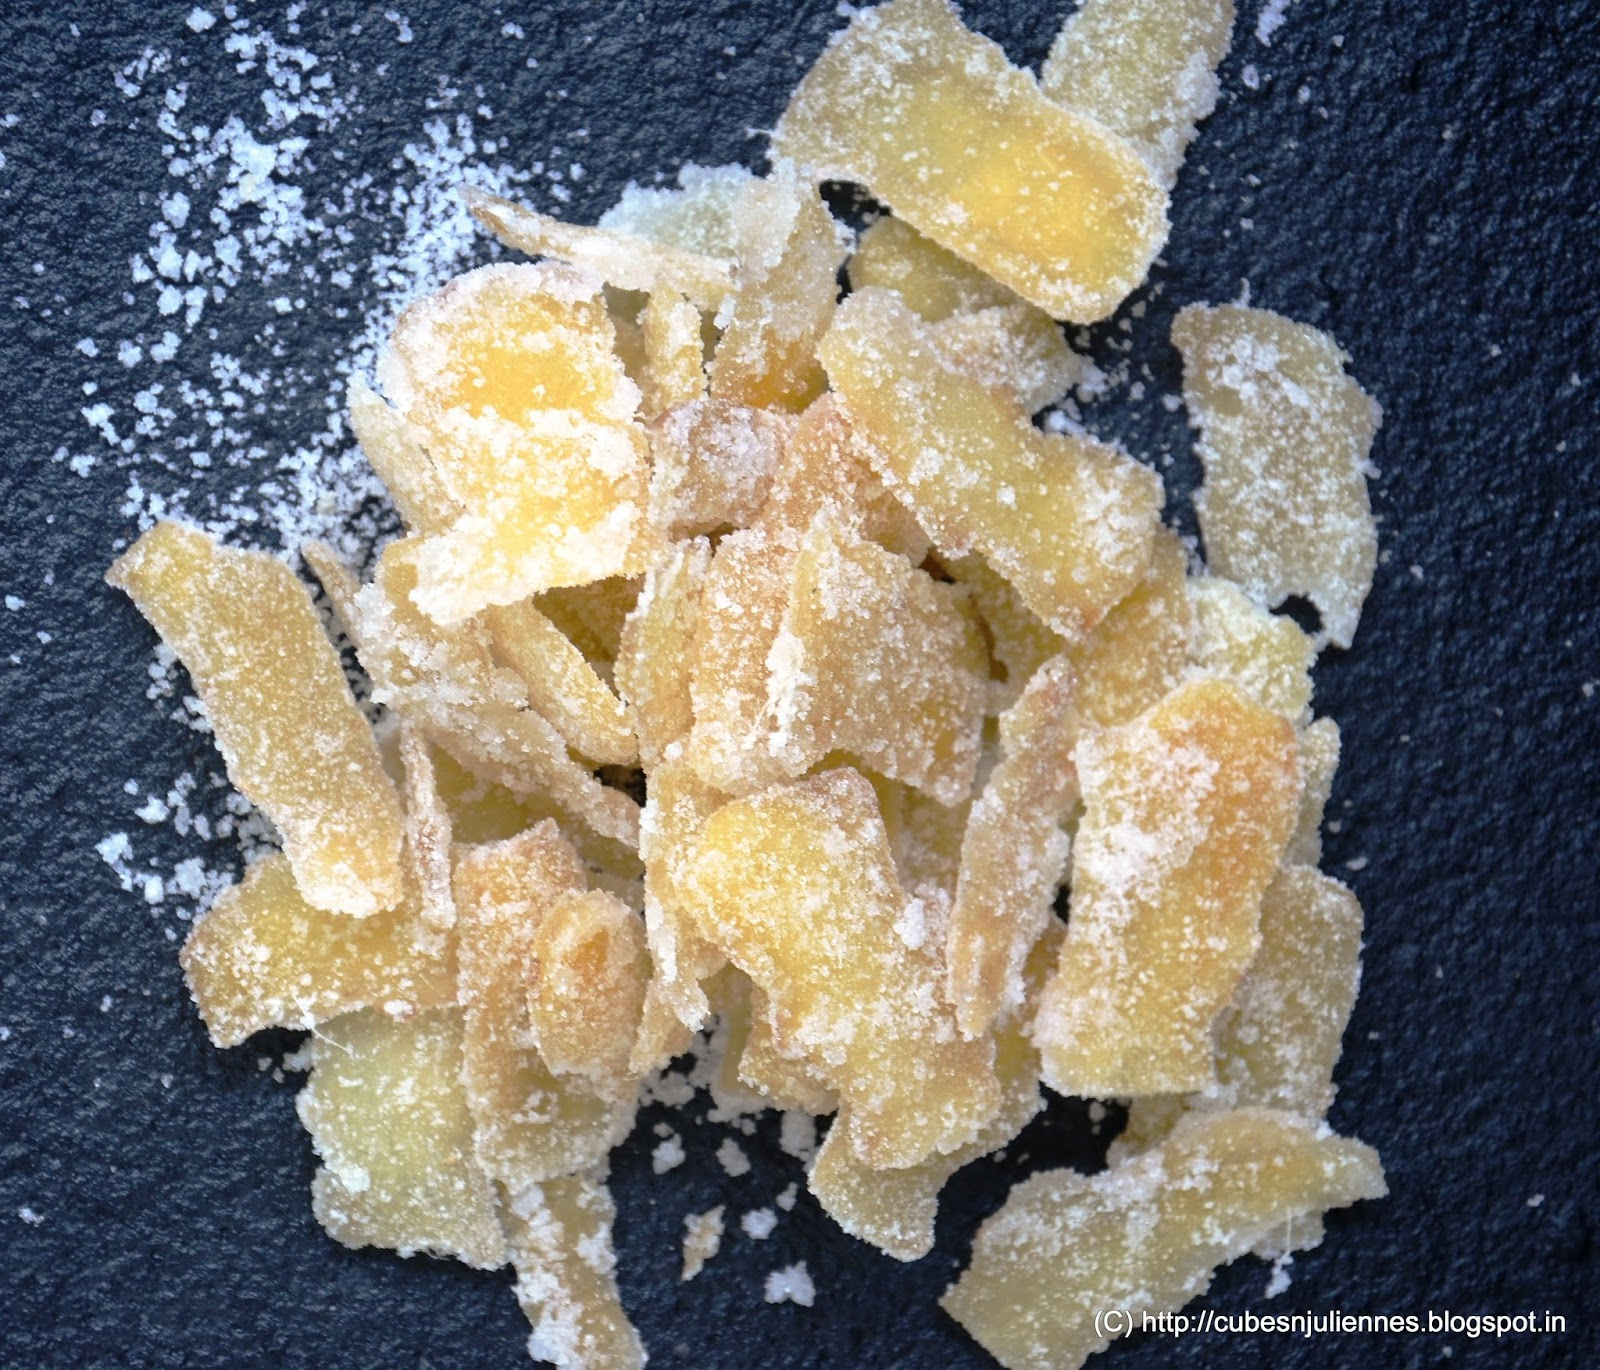 Candied ginger or Crystallized Ginger is made from ginger slices ...